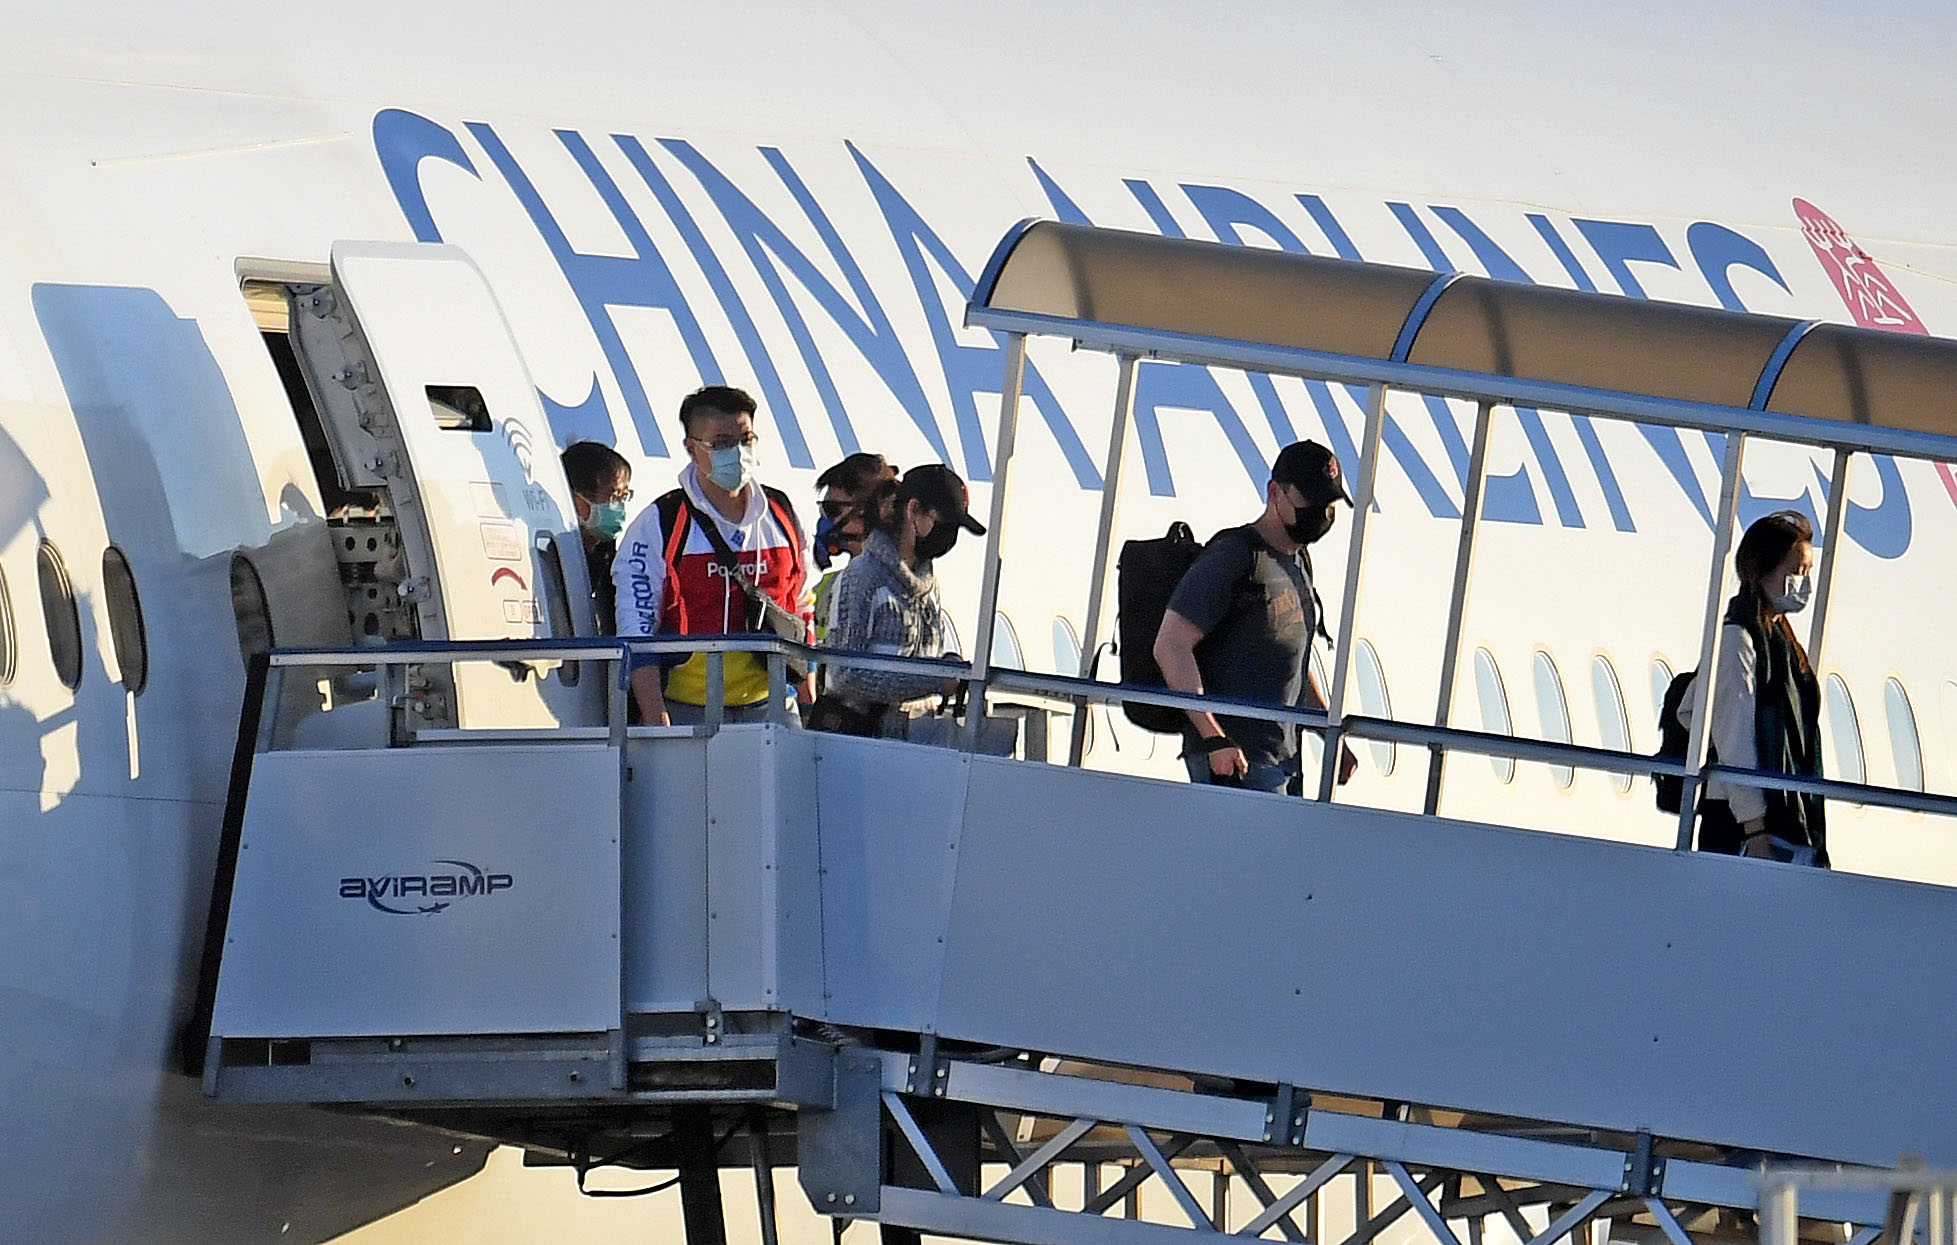 Ontario airport continues flights to and from Taiwan, despite ...